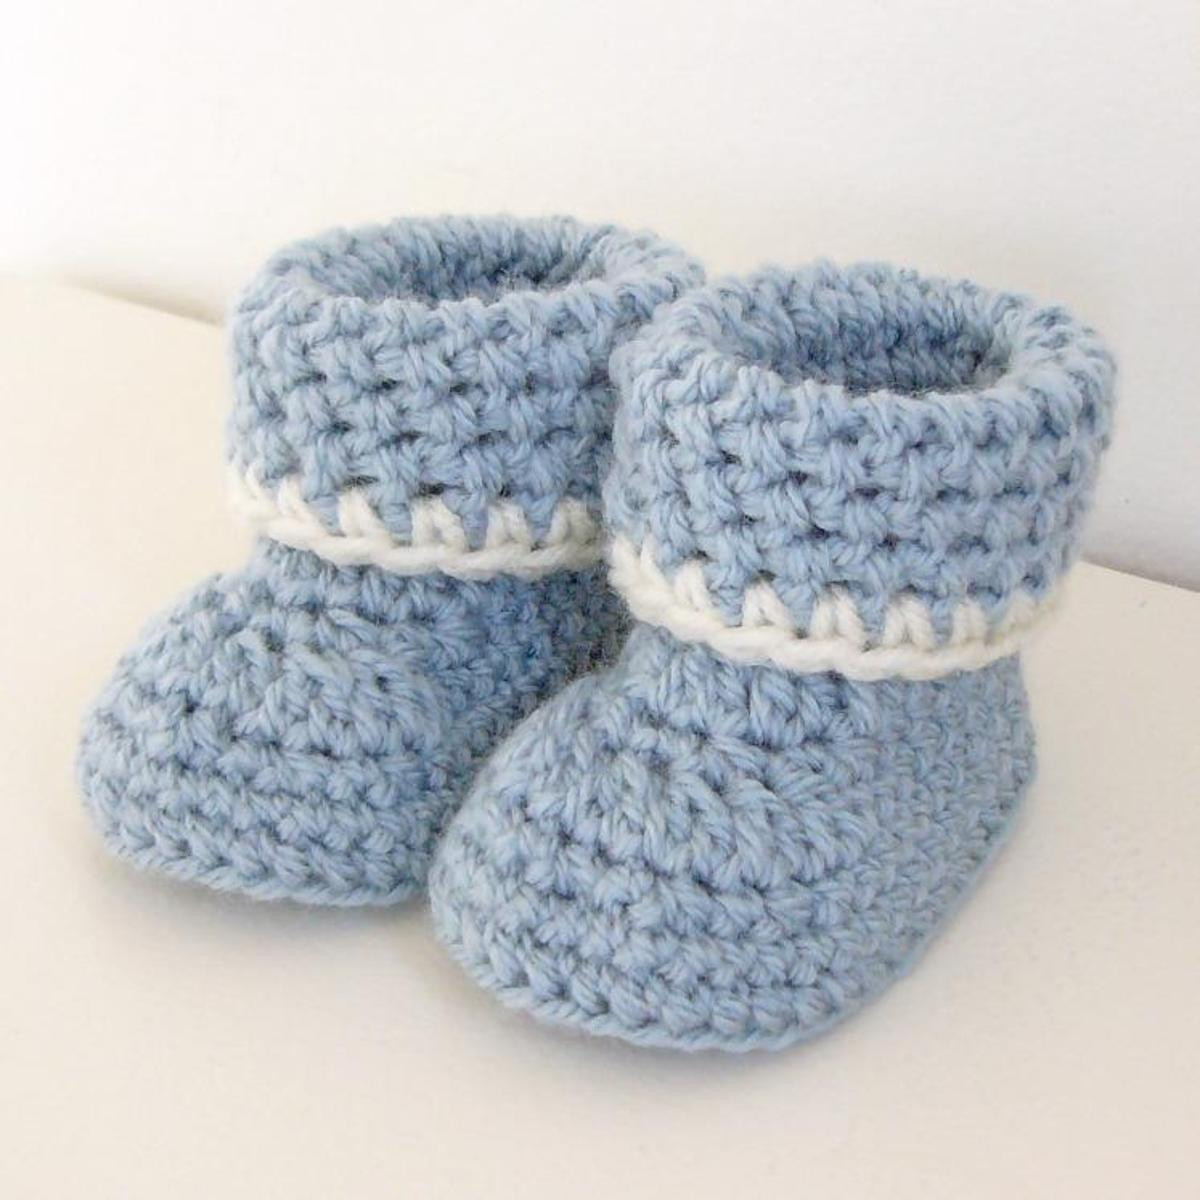 Fresh Cozy Cuffs Crochet Baby Booties Pattern Easy Baby Crochet Patterns Of Gorgeous 49 Photos Easy Baby Crochet Patterns